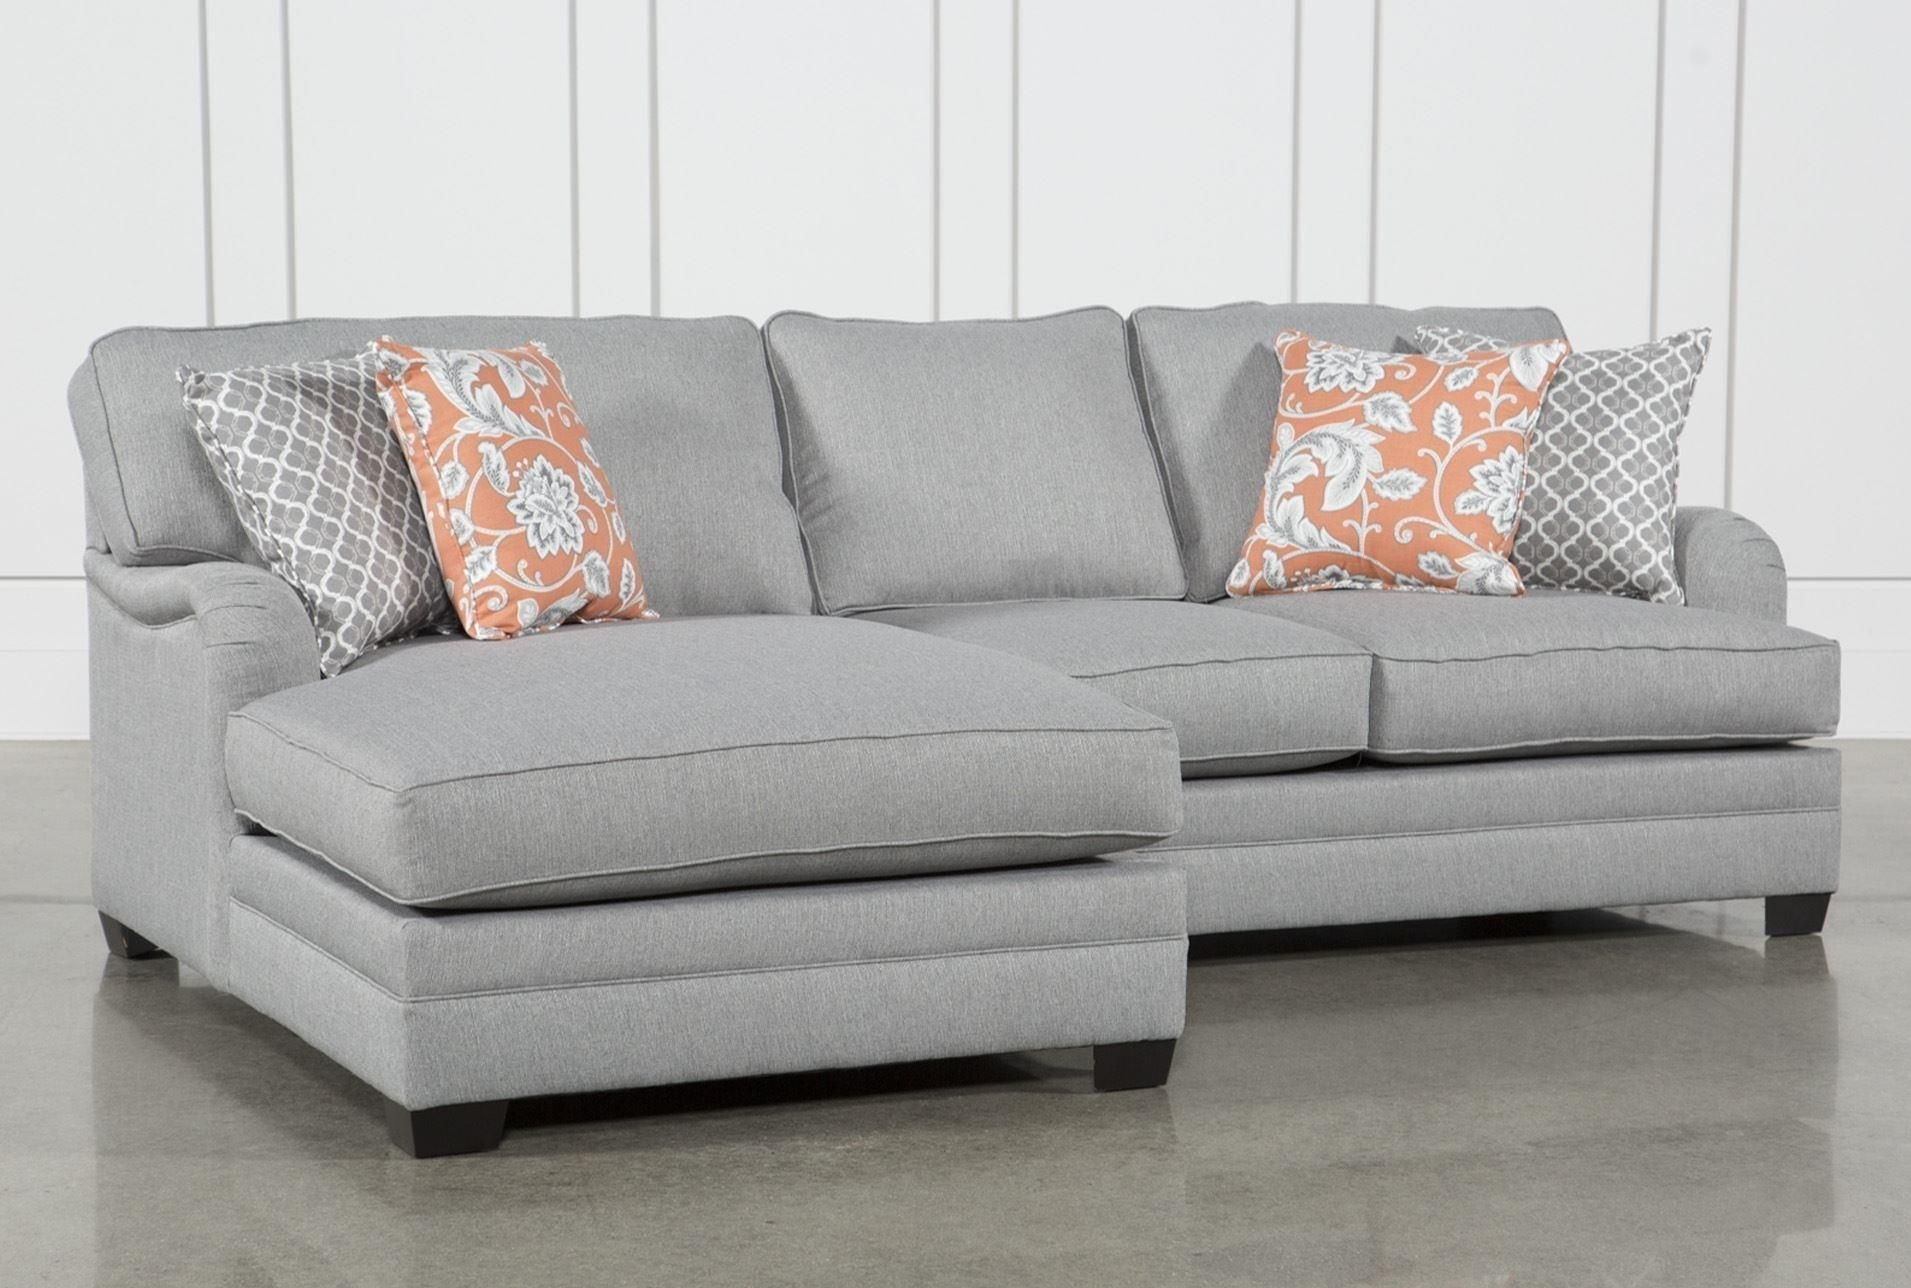 Marissa 2 Piece Sectional W/laf Chaise, Grey, Sofas Throughout Mcculla Sofa Sectionals With Reversible Chaise (View 10 of 30)